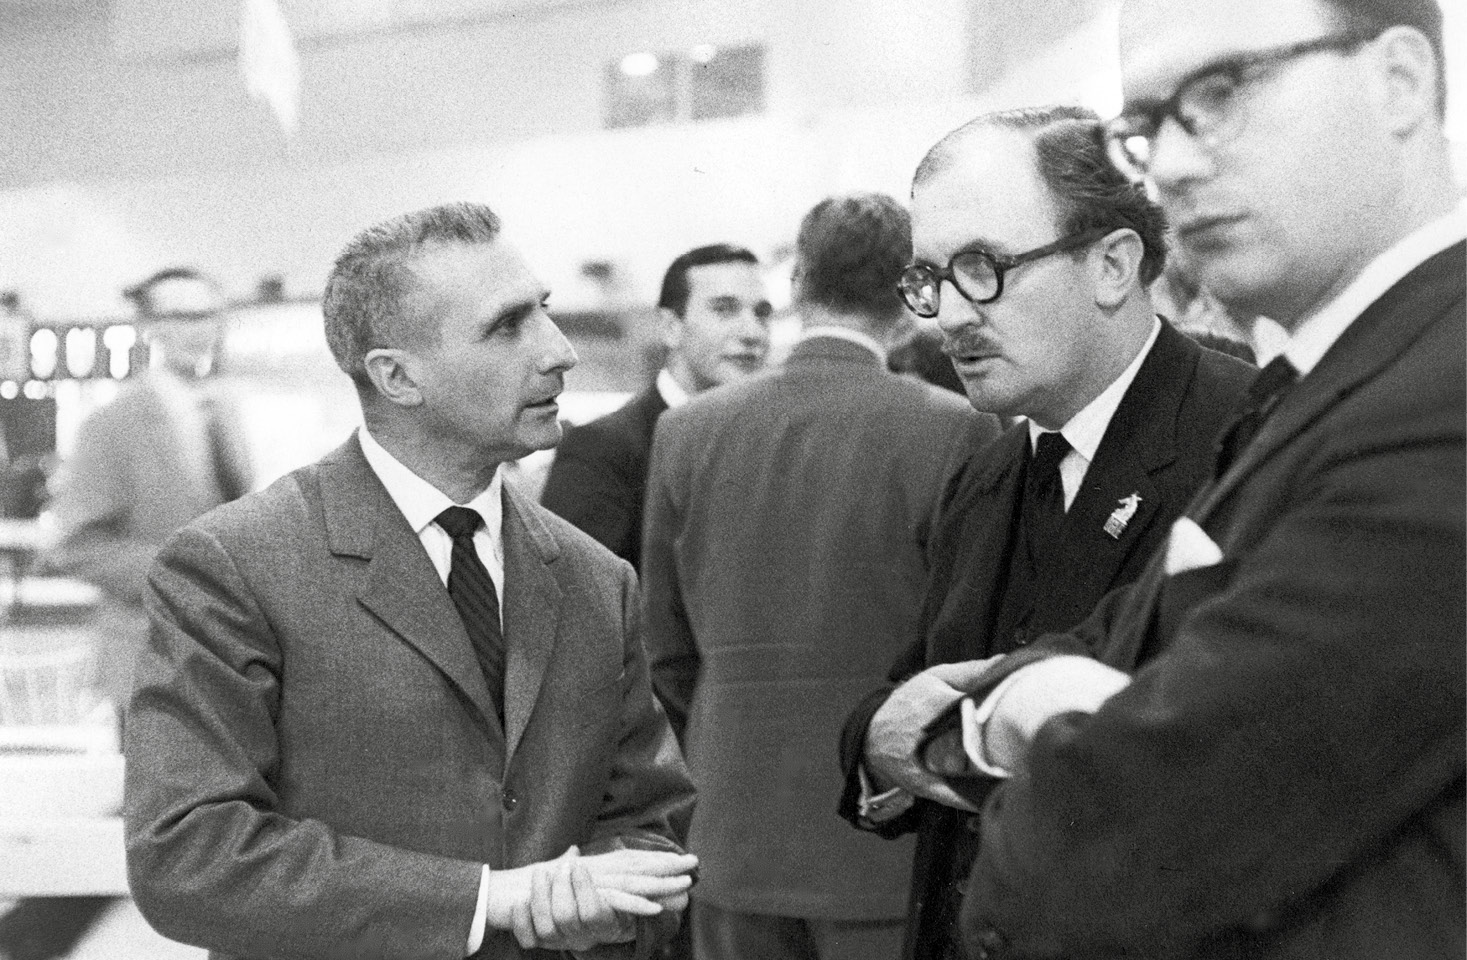 John Ogier (middle) chats to Dr Feyles Pinin Farina (left) at the1962 London Show